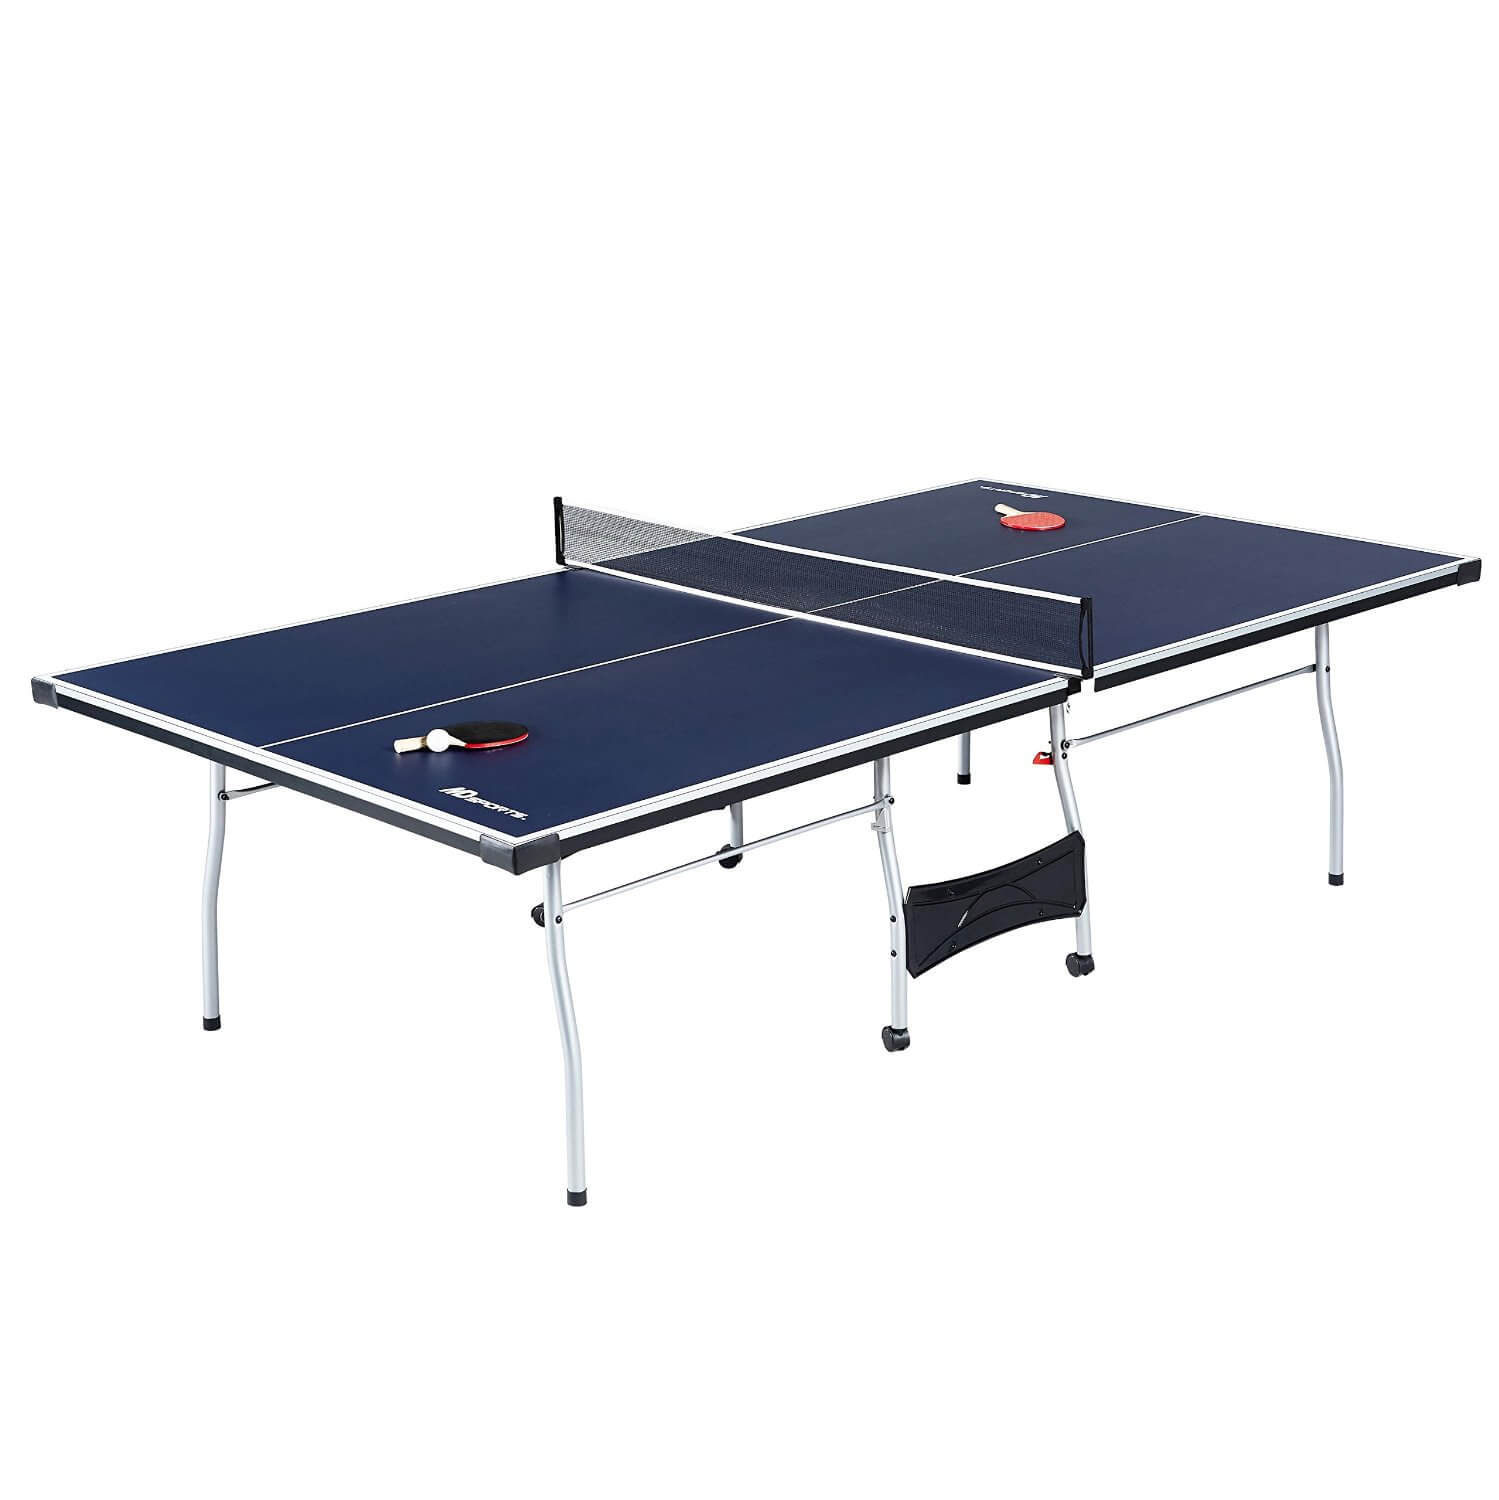 MD ping pong table